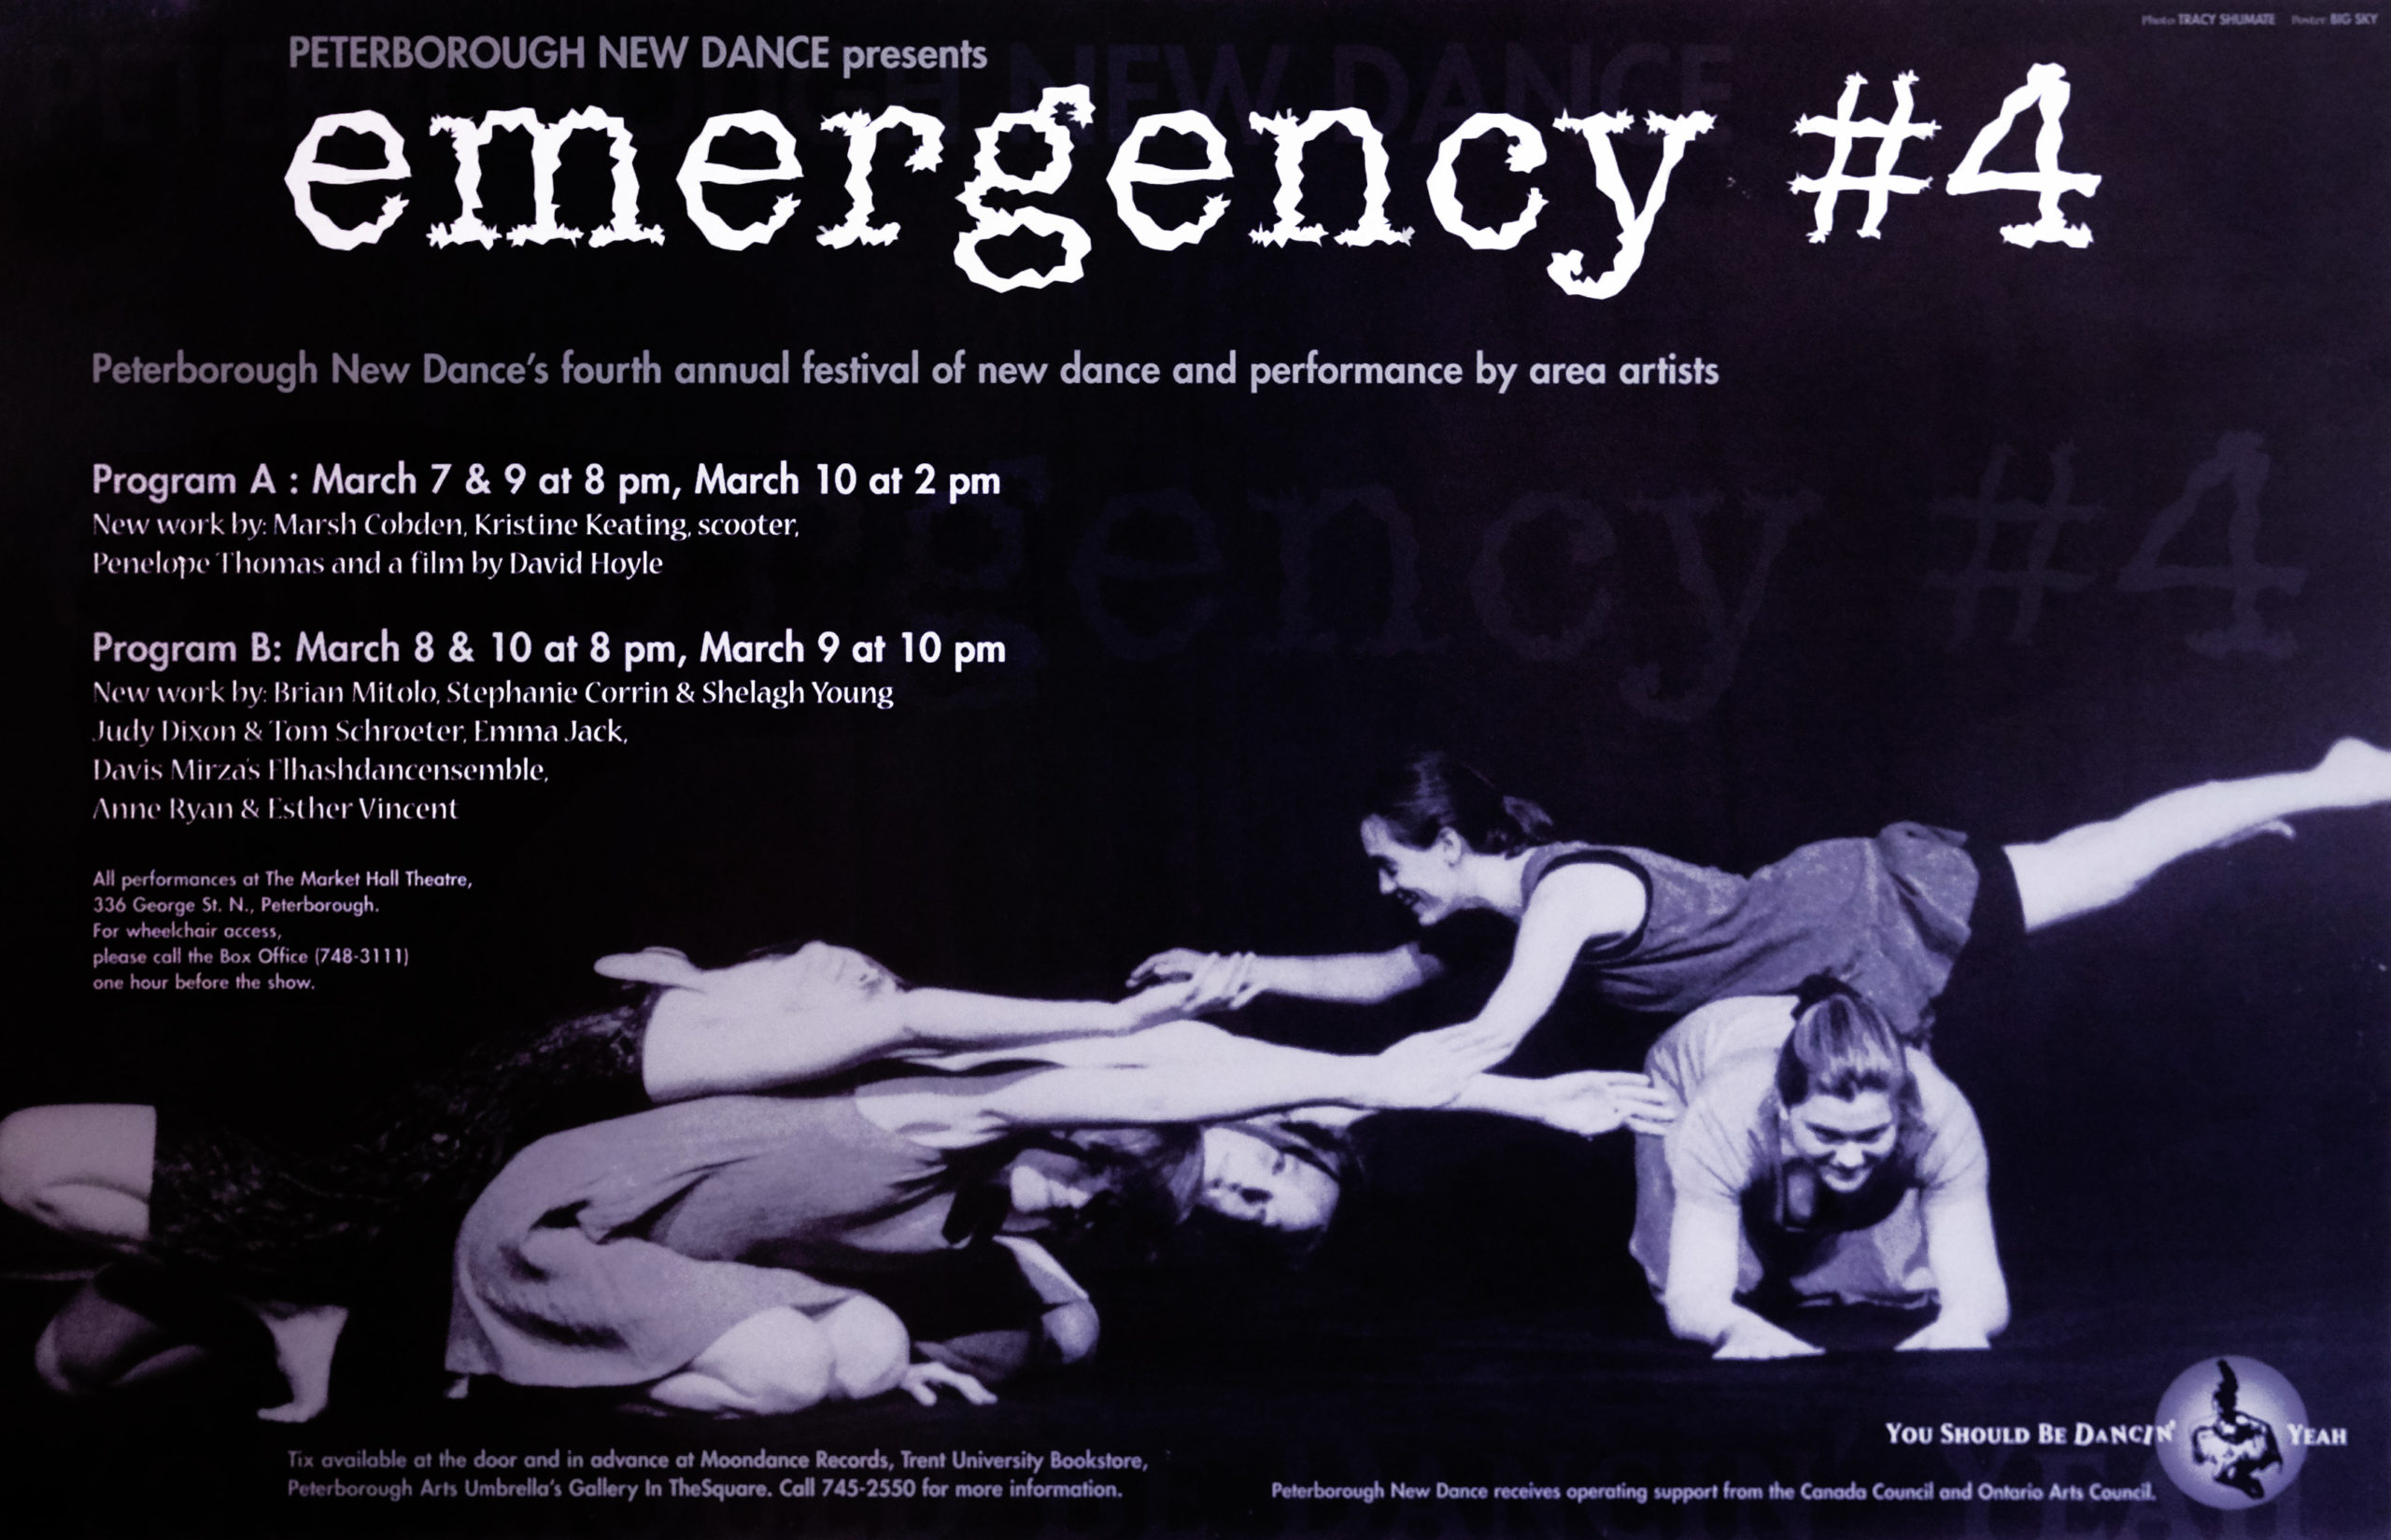 Emergency #4 – Festival of new dance and performance by Peterborough-based artists